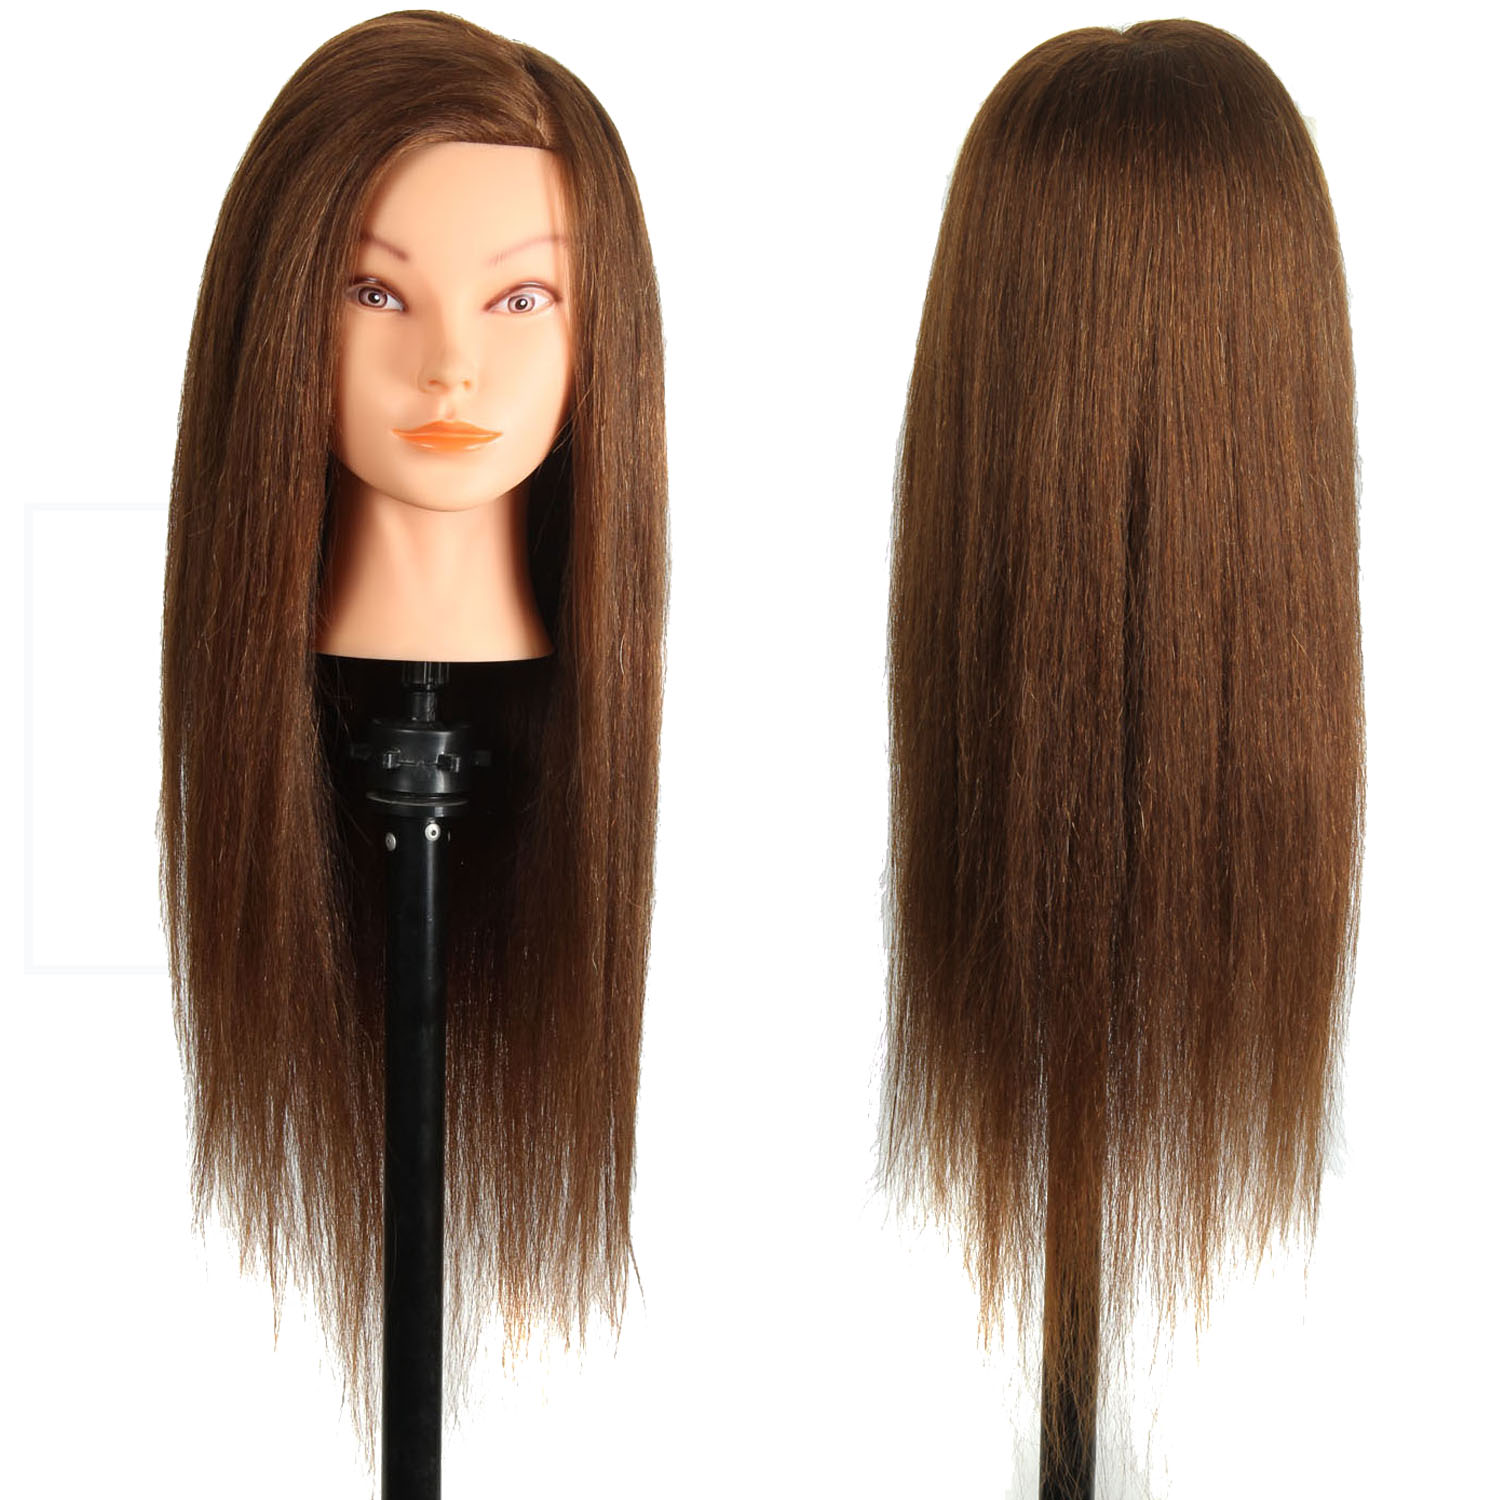 New Cosmetology Mannequin Head 24″ Medium Brown Make-up Unprocessed Mannequin Heads Mix Human Hair and Animal Hair Dummy Head